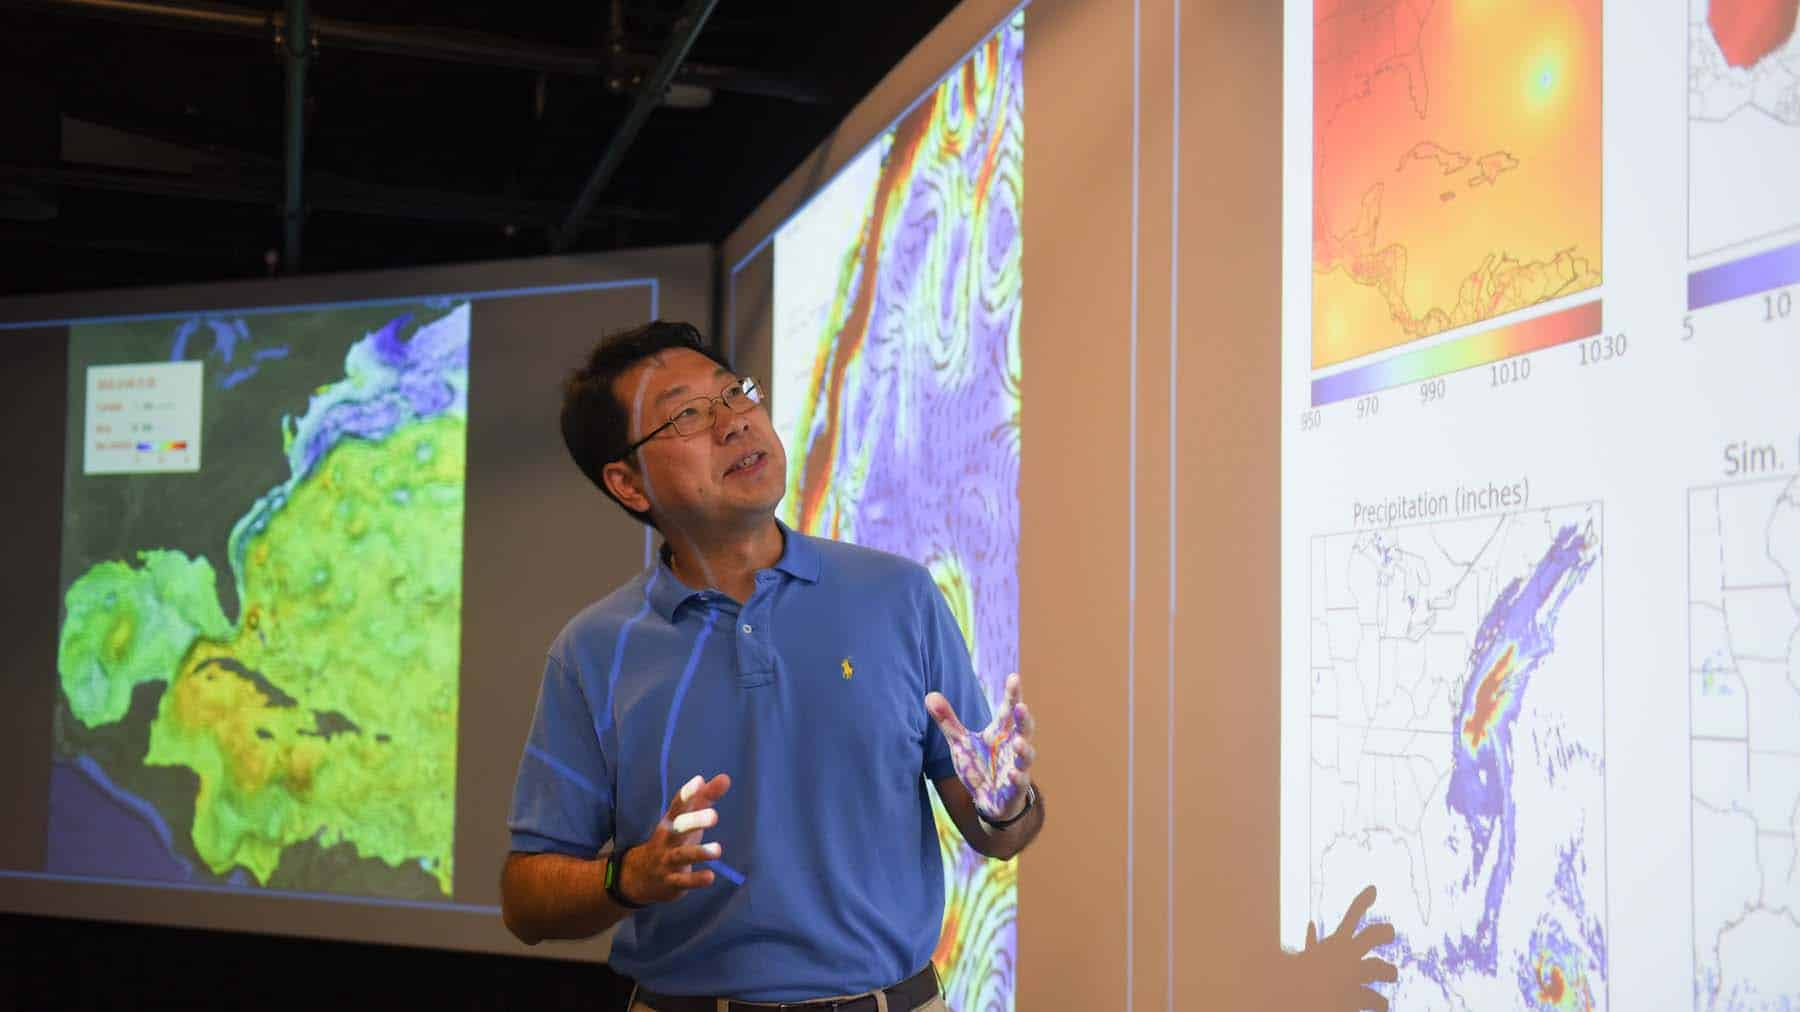 Ruoying He looks at ocean weather visualizations on large screens